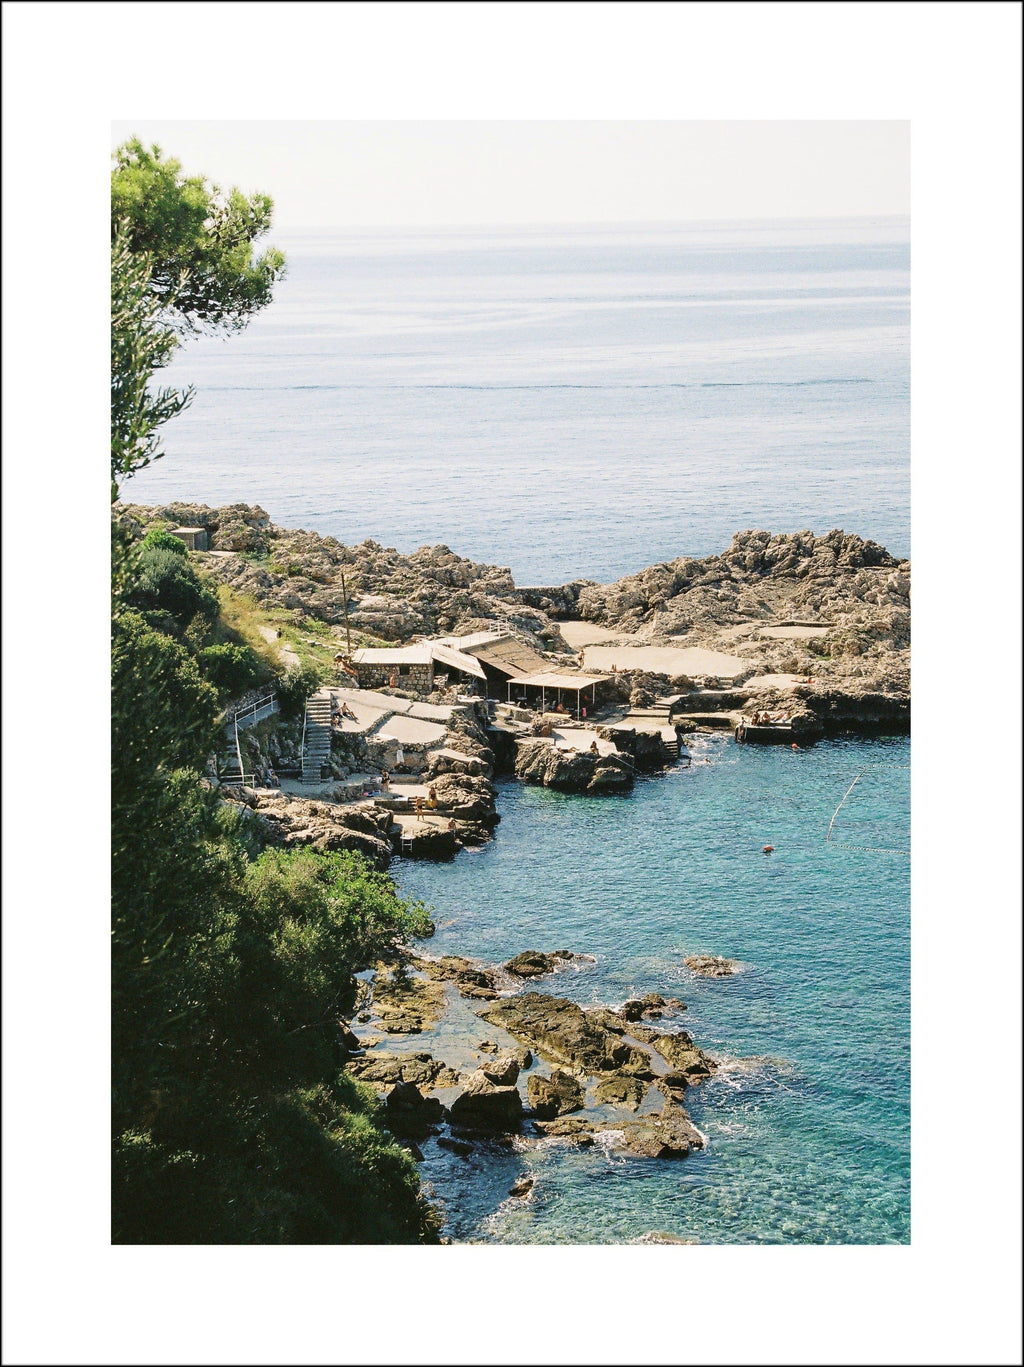 Dubrovnik Beach - Lively Bay - Posters - Livelybay.com